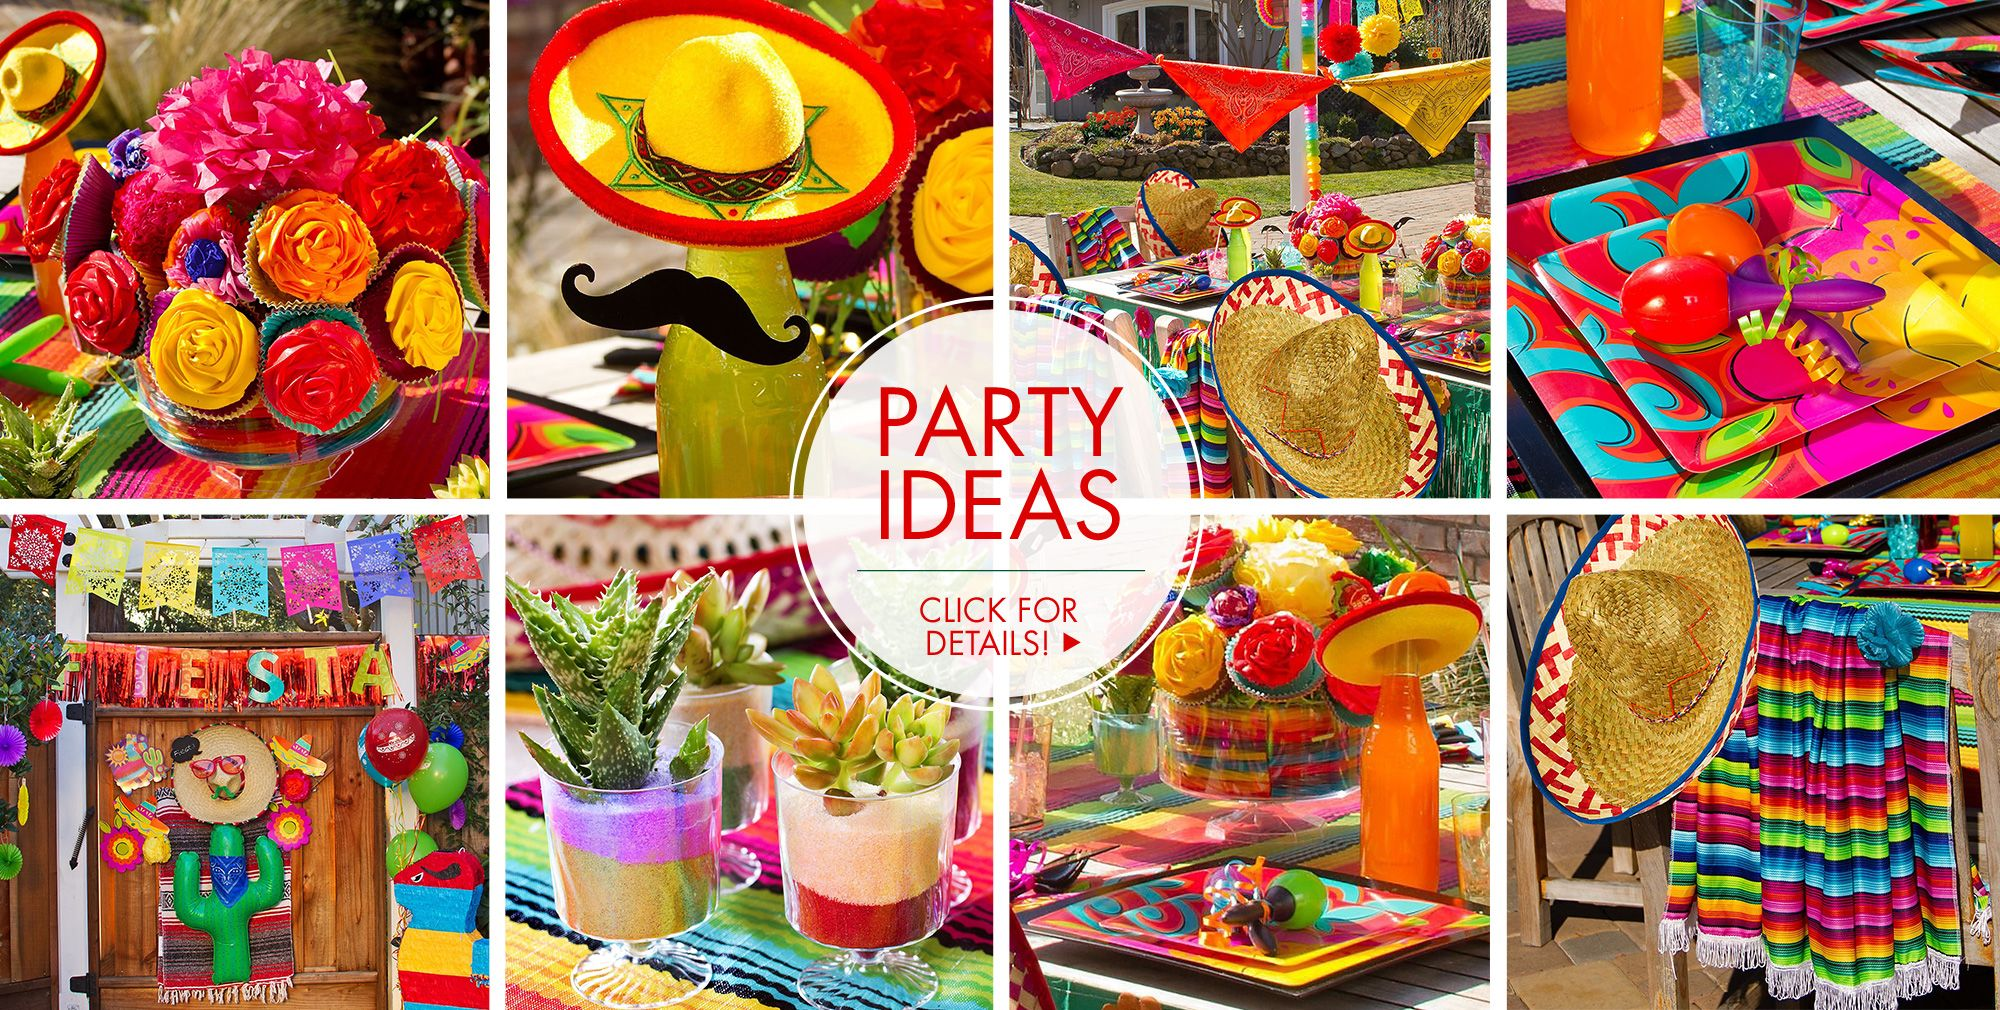 Cinco de Mayo Party Ideas — Caliente Fiesta Theme Party Supplies